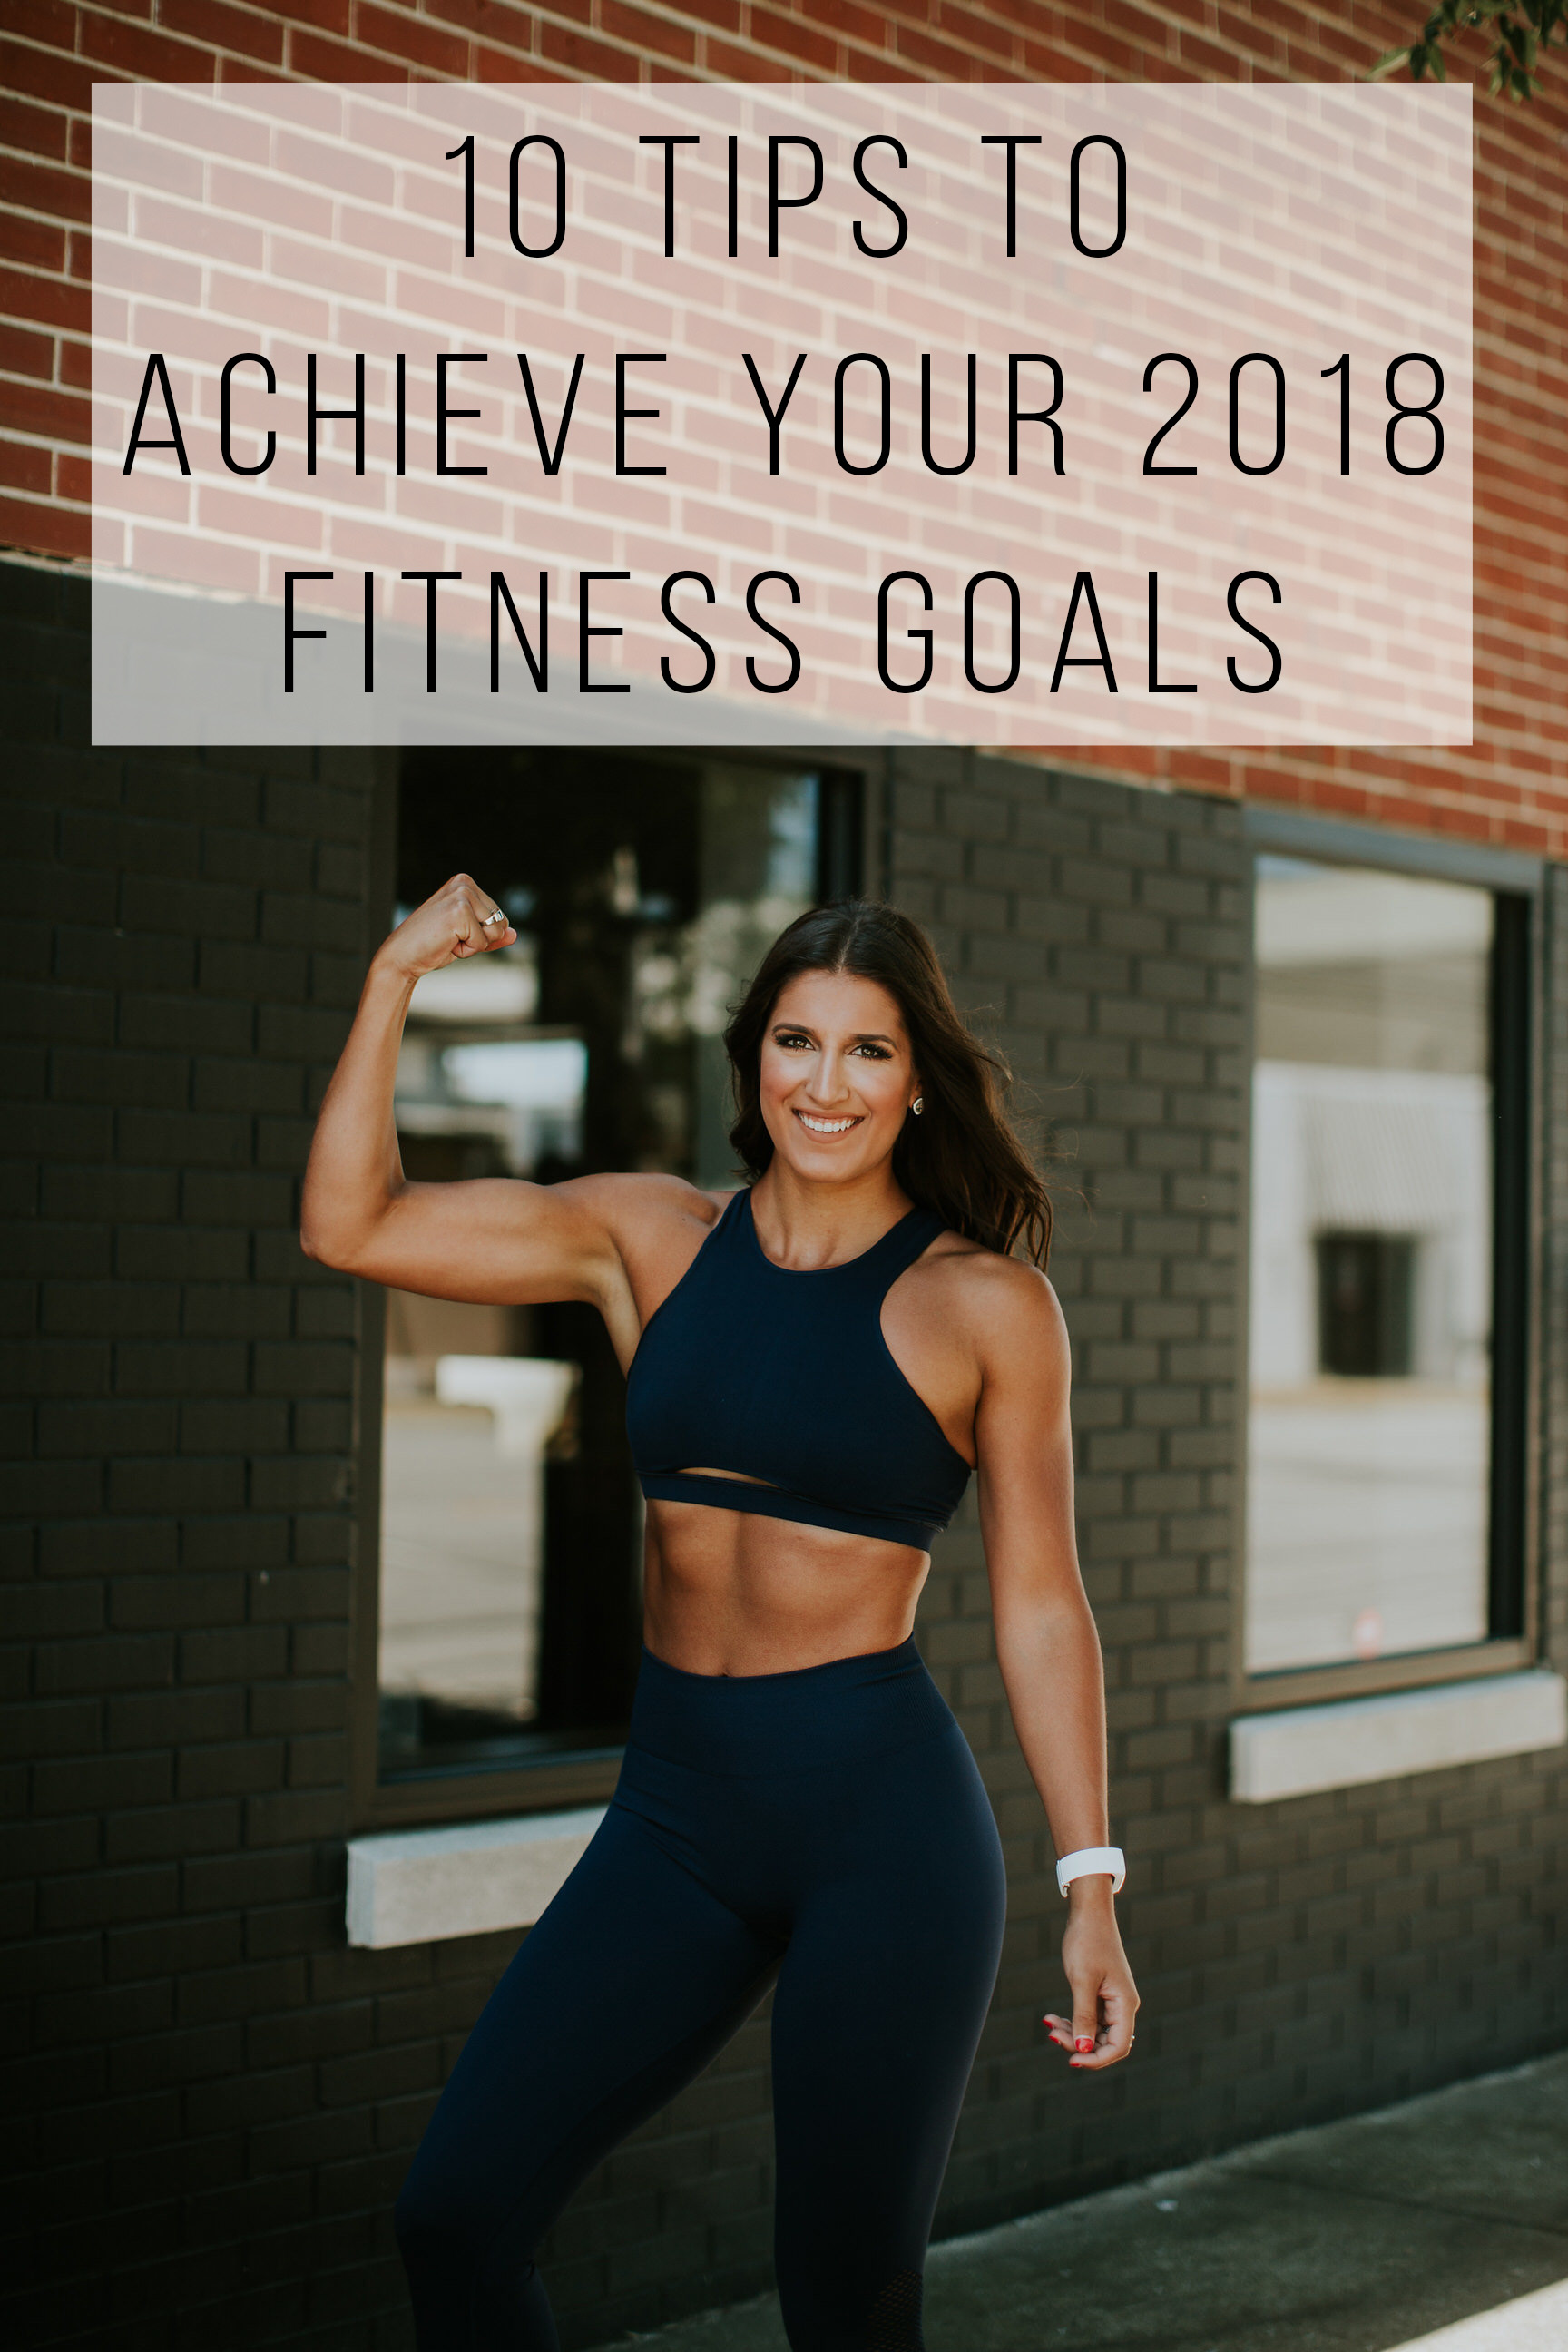 10 Tips To Achieve Your Fitness Goals